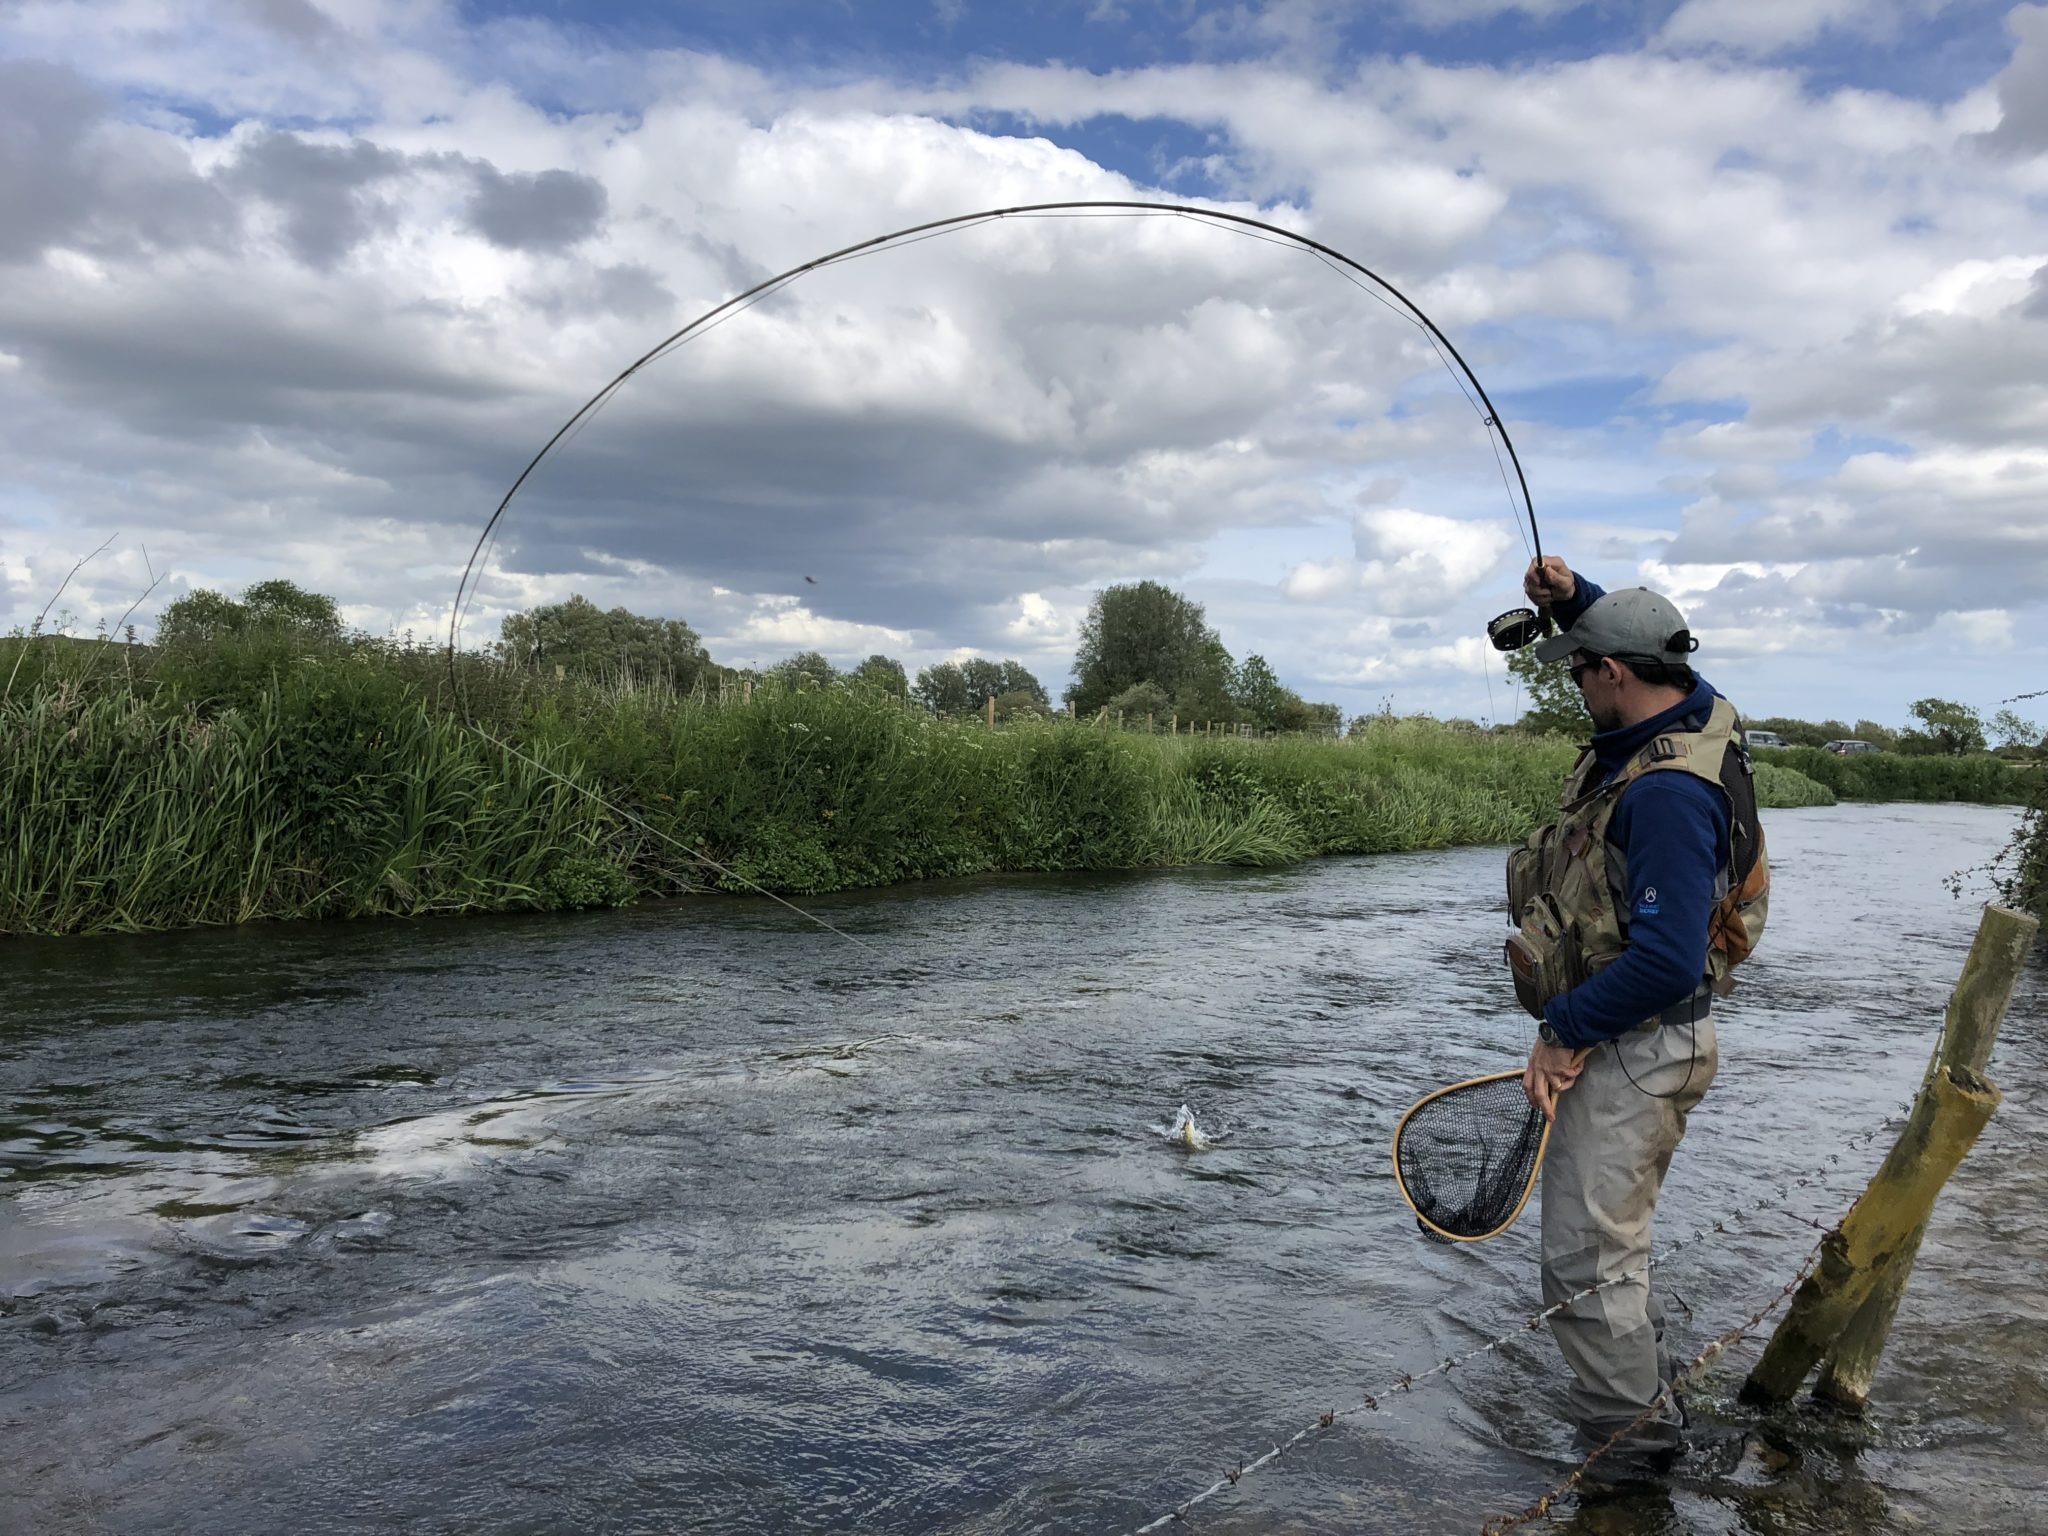 River Frome Chalkstream fly fishing, Dry Fly Fishing, Alex Jardine, Aardvark McLeod Dry Fly Fishing